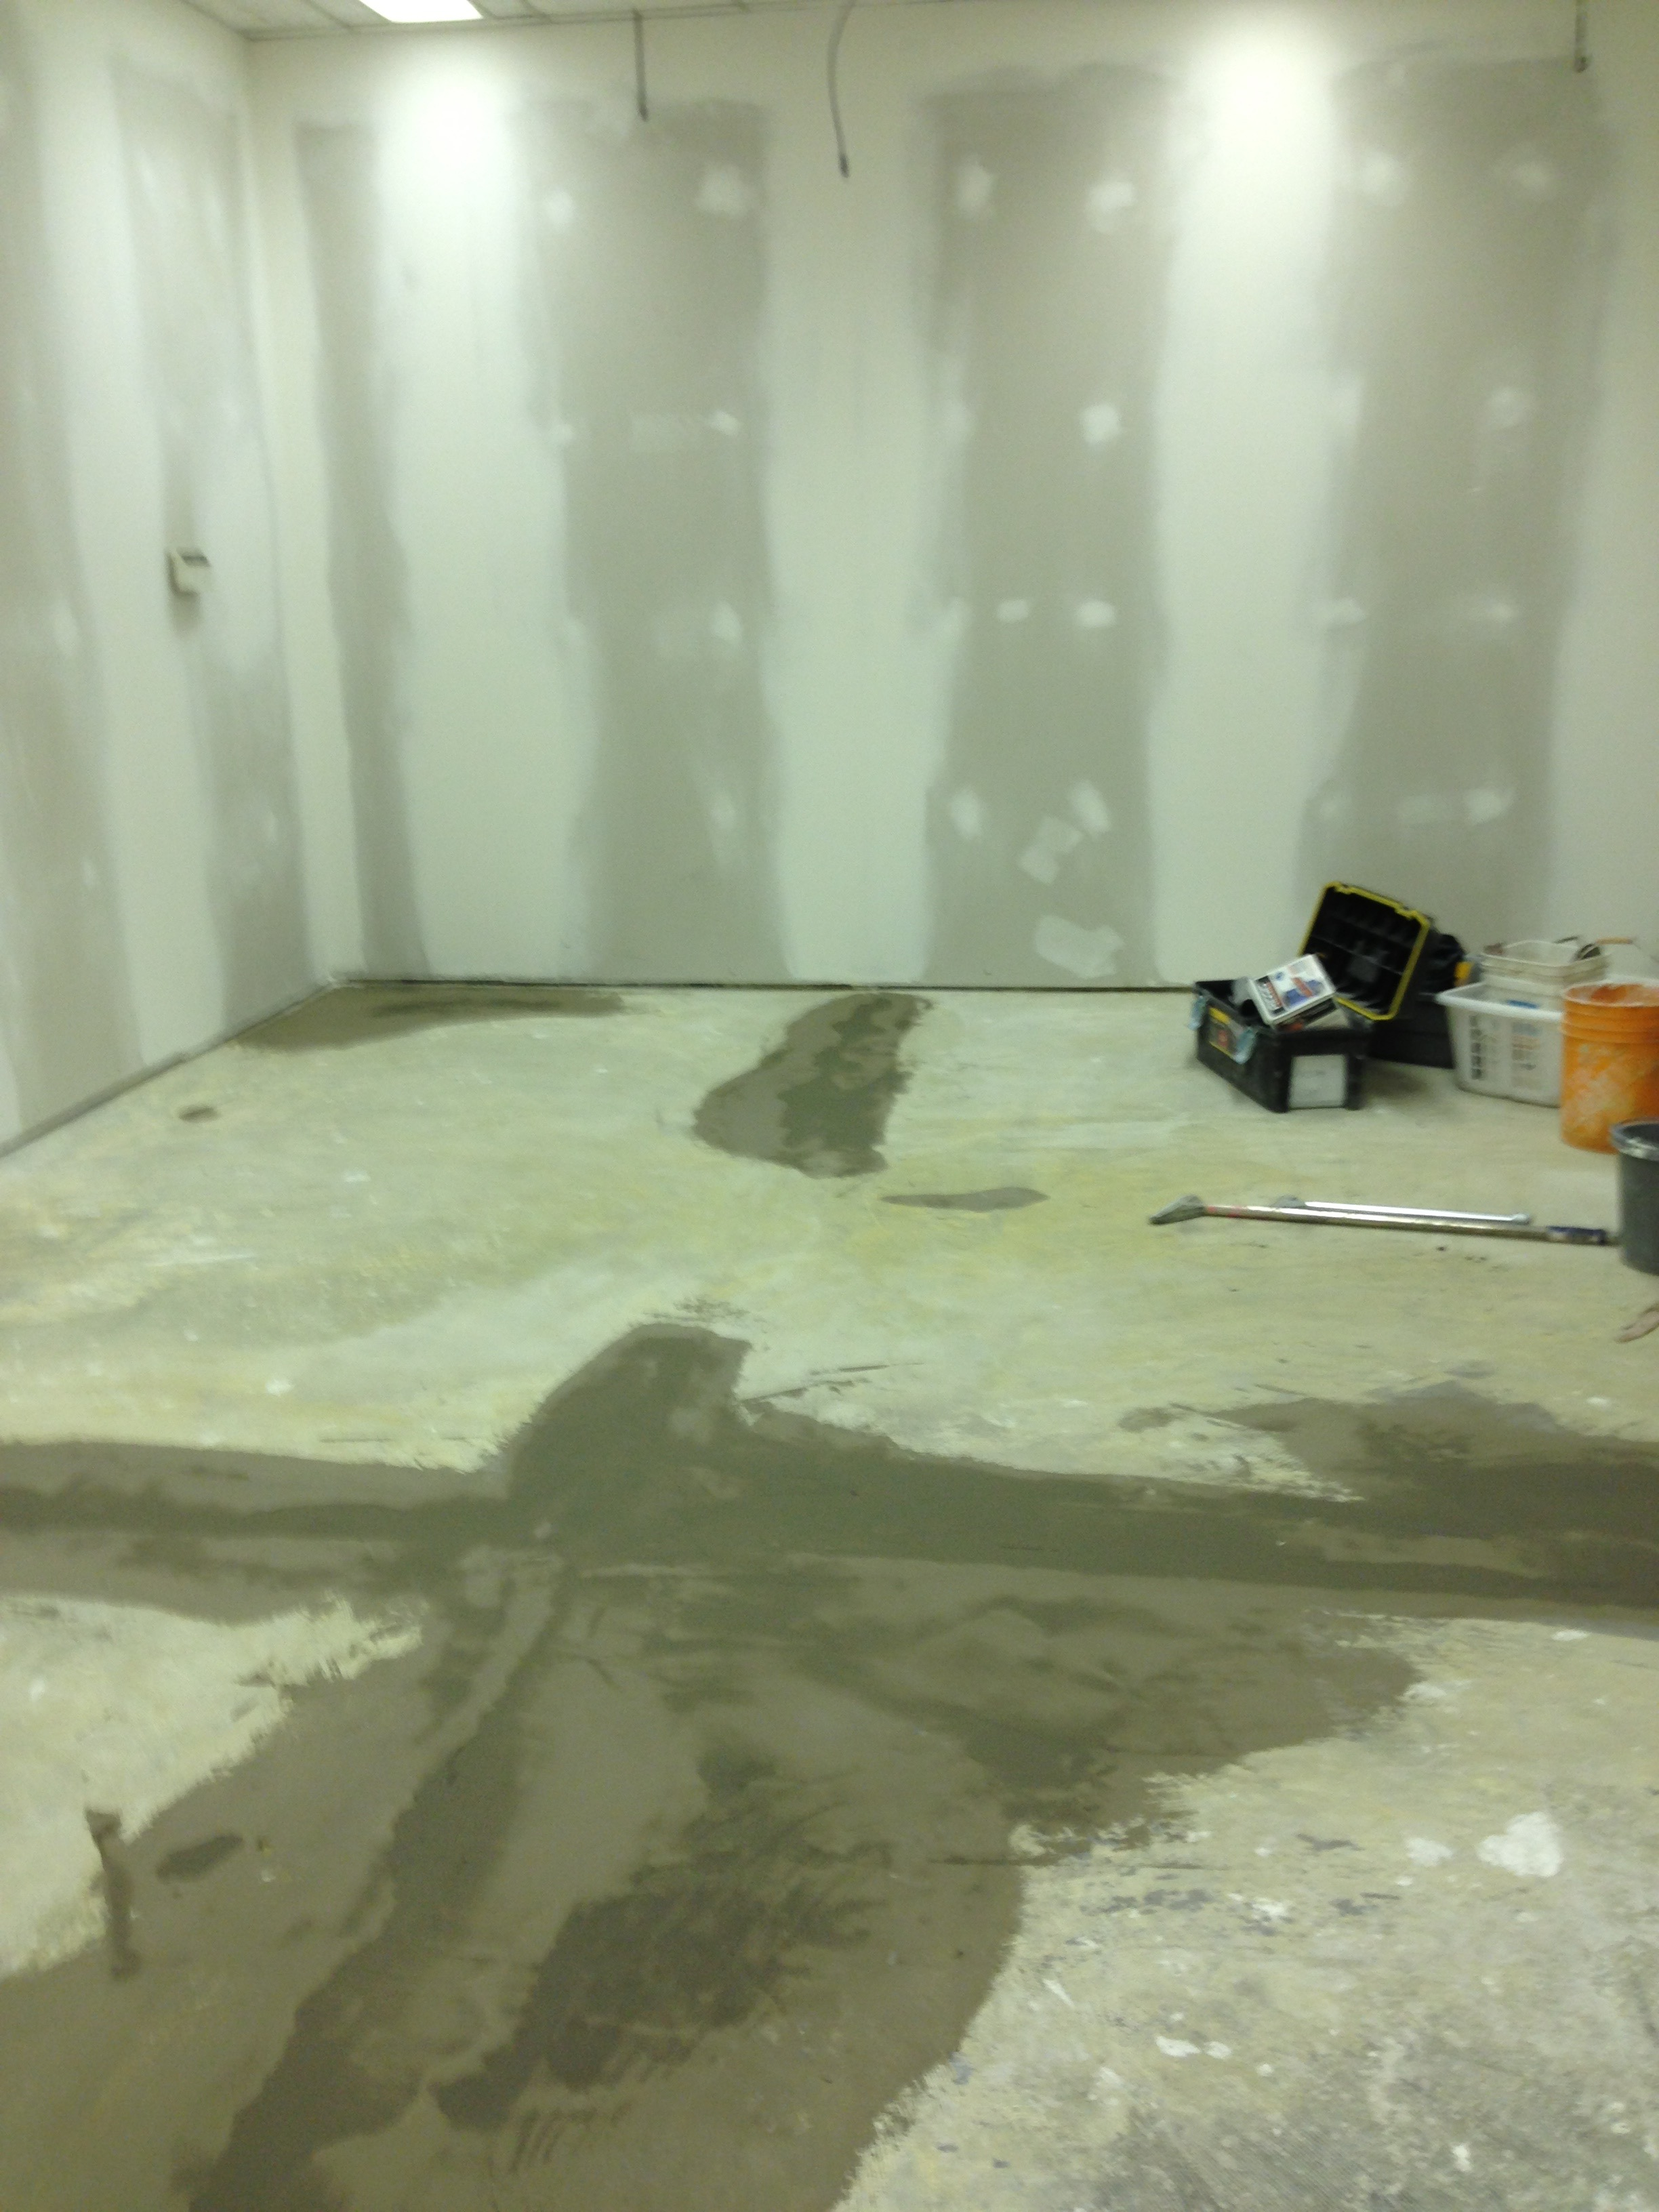 FC02  Floor Coverings - General Contractors Commercial Renovations in Edmonton, Office and Warehouse Project Contractors